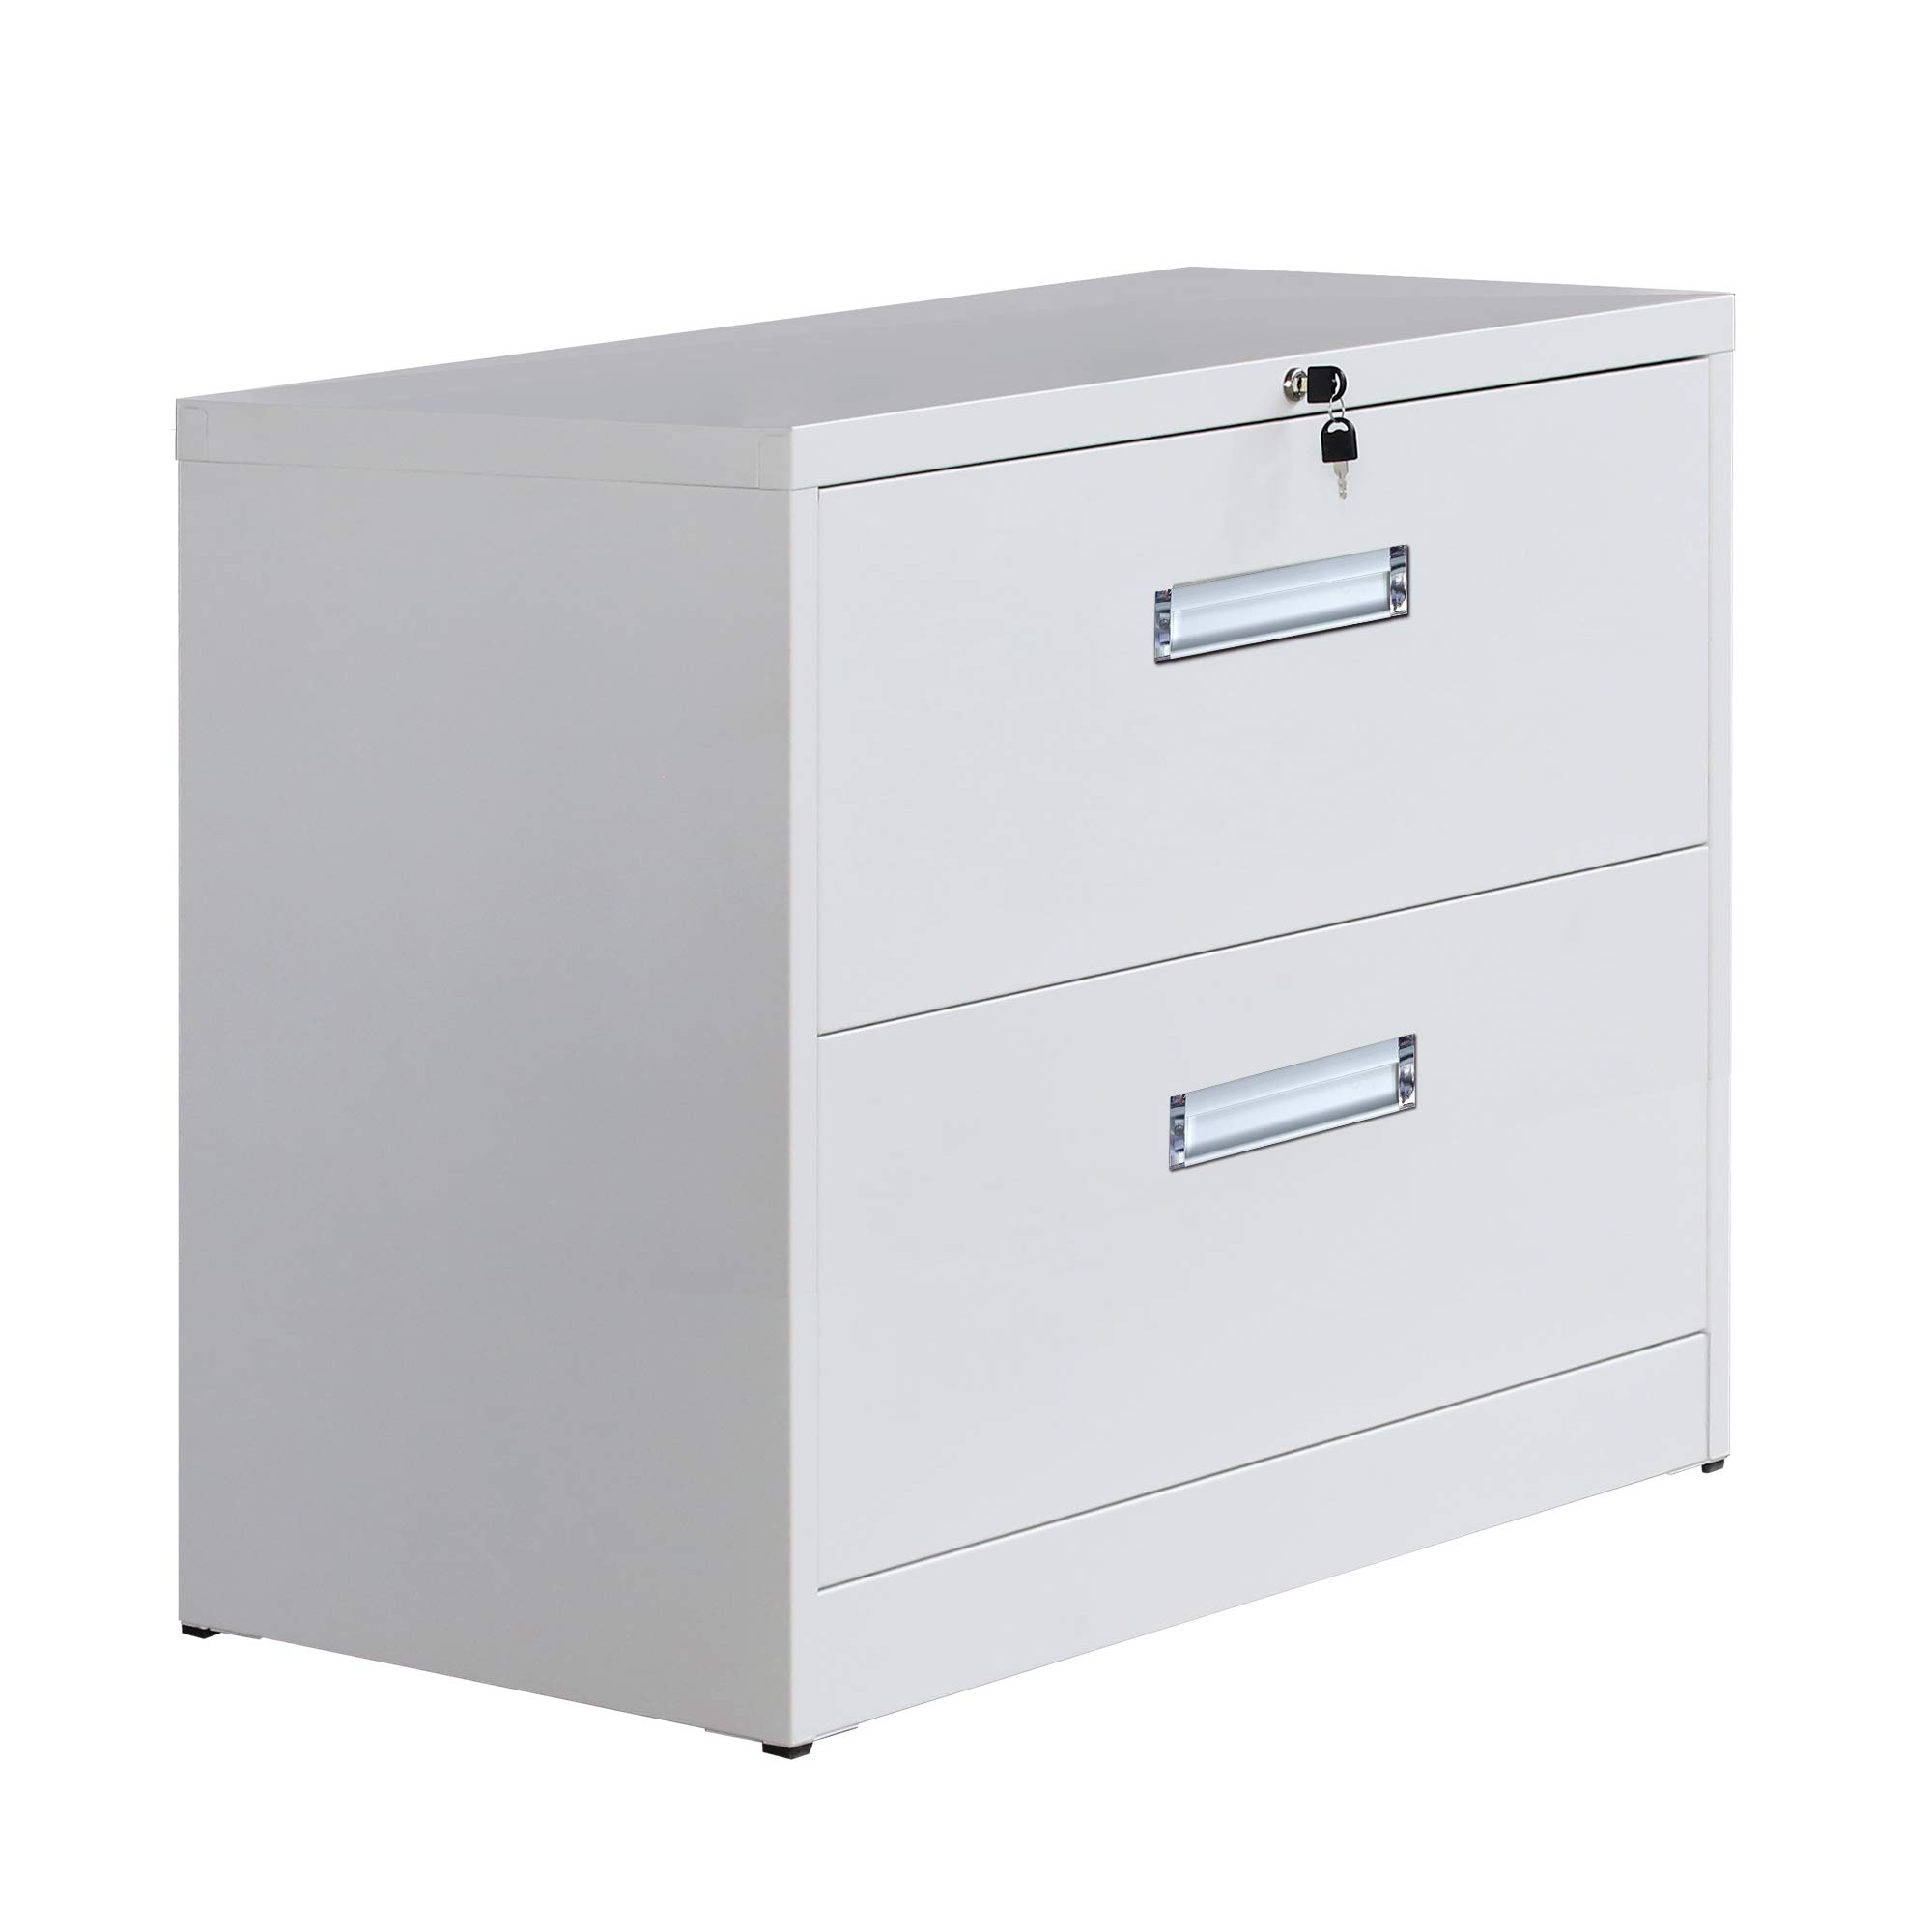 Modern Luxe 2/3 Drawers Metal Vertical Lockable File Cabinet with Hanging File Frame for Legal & Business File (2 Drawers, White)